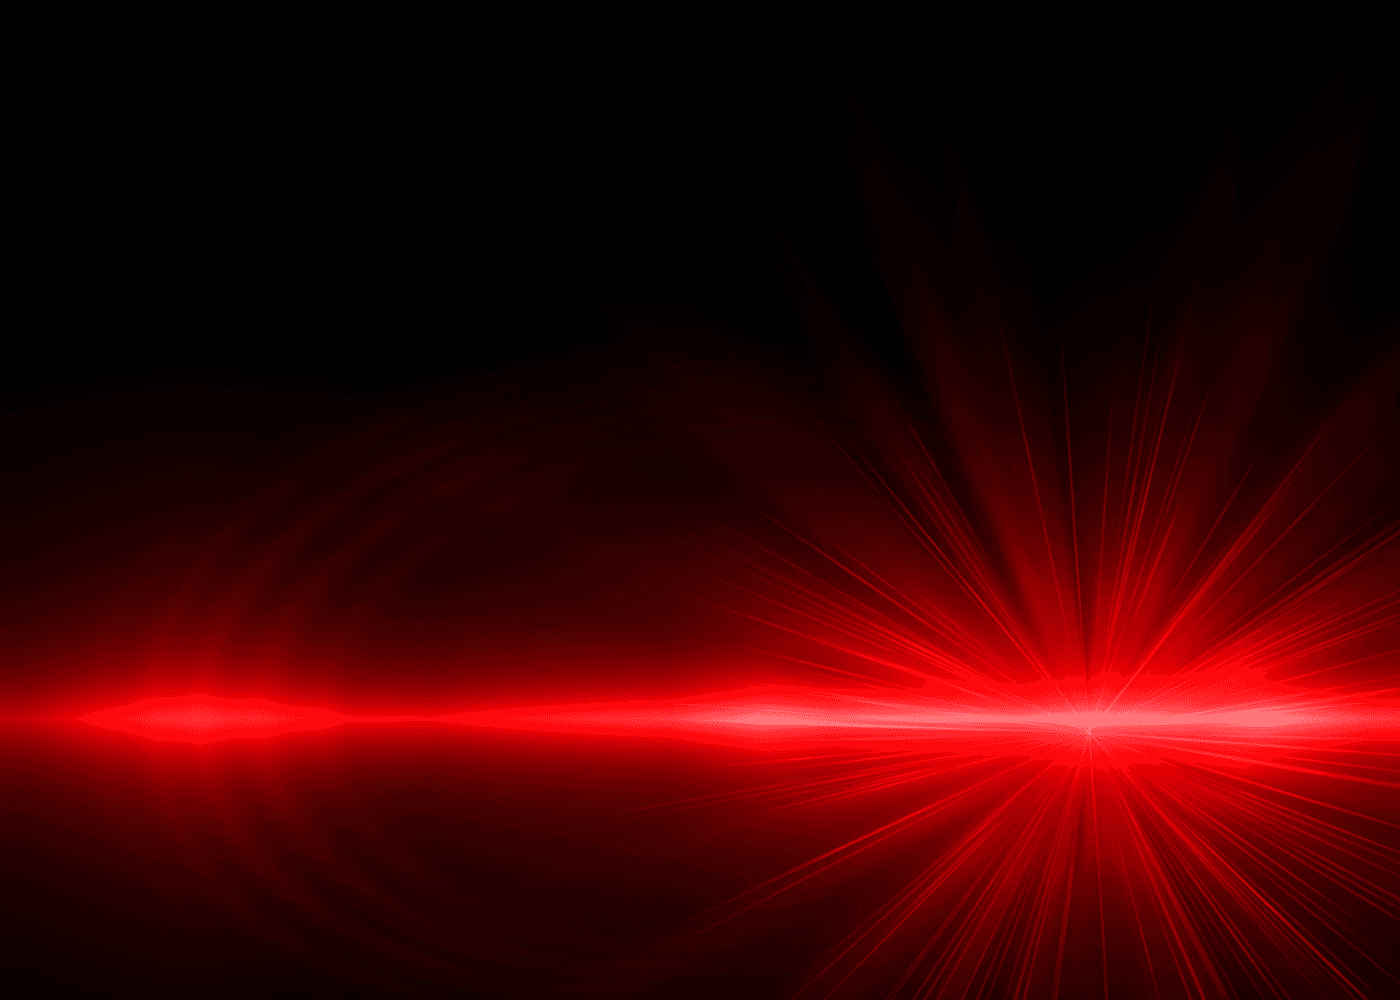 View of a red laser light